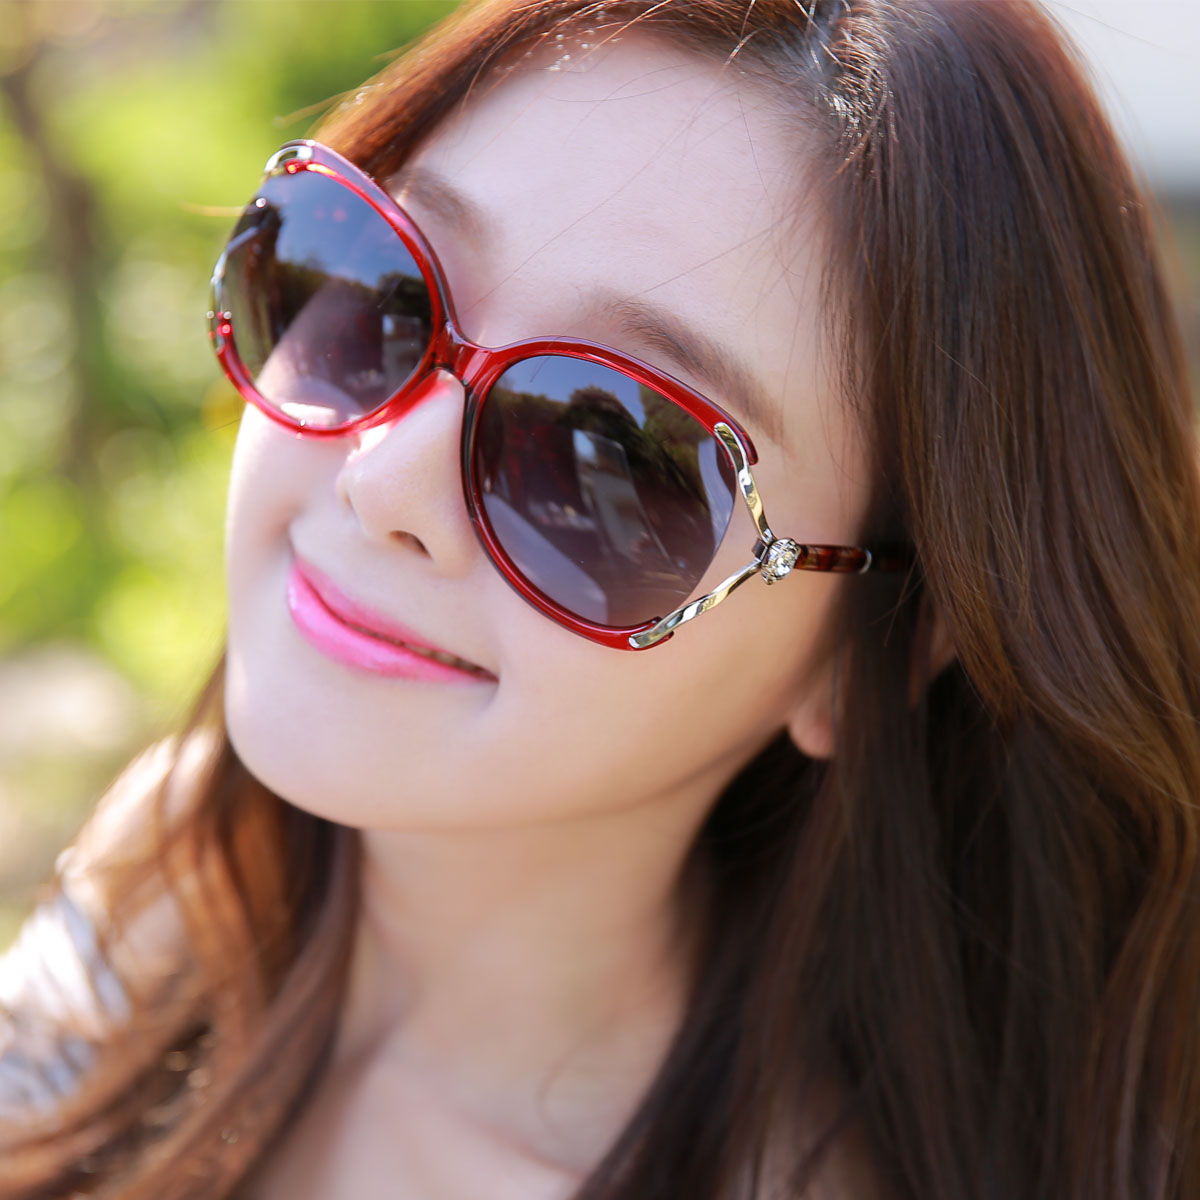 Xin lei 2016 new sunglasses sunglasses sunglasses yurt ultralight elegant hollow influx of women western style